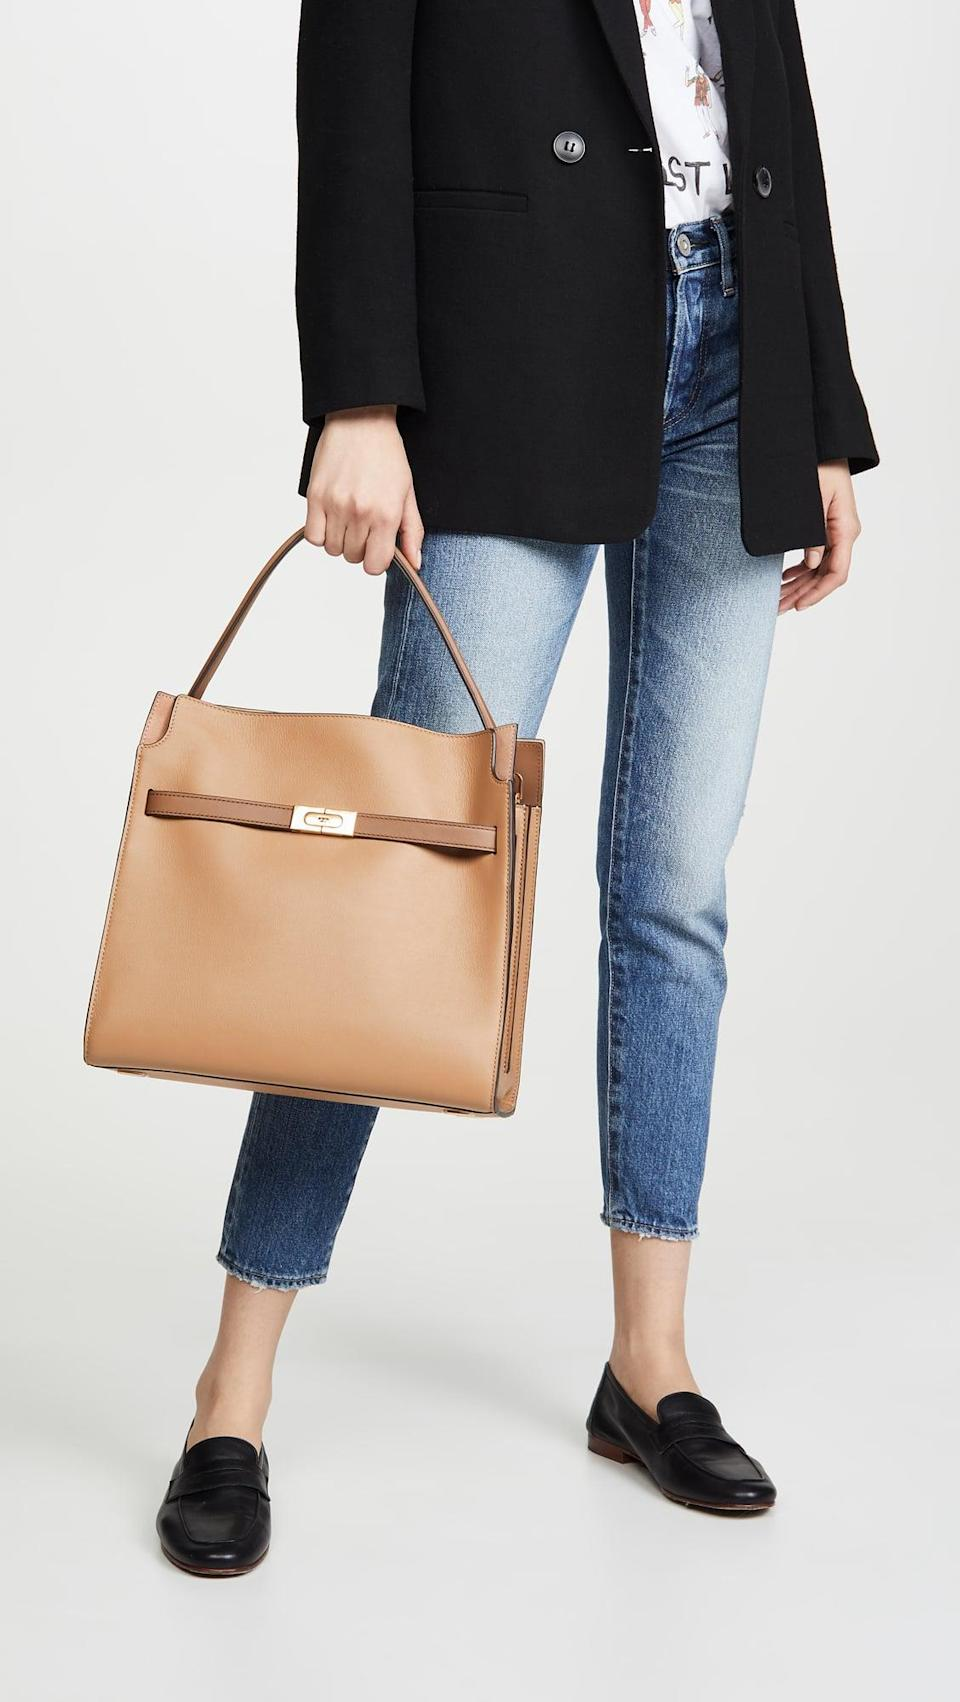 <p>This chic <span>Tory Burch Lee Radziwill Double Bag</span> ($998) will make your outfit look more polished.</p>